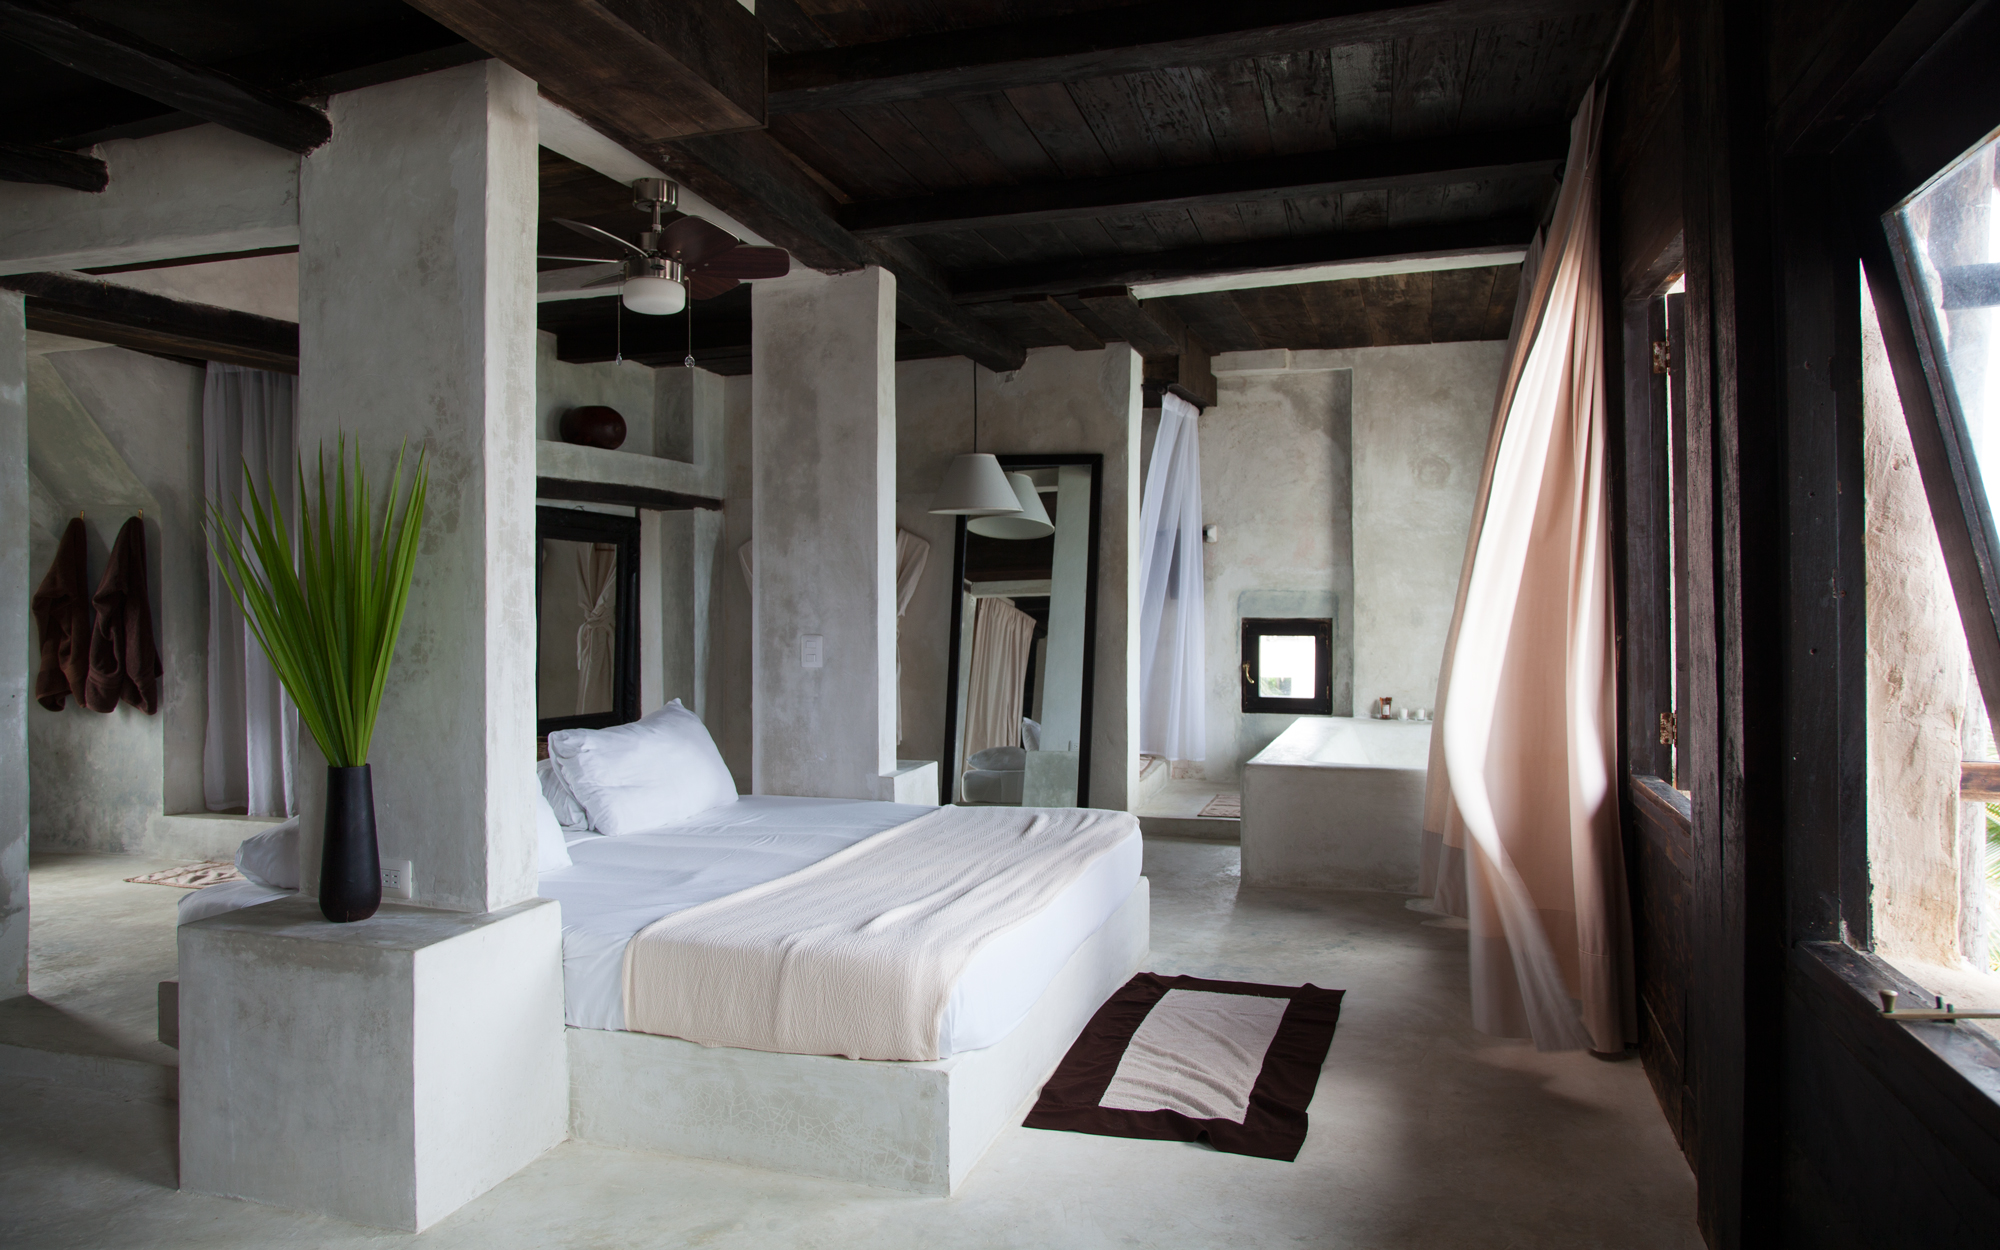 Guest Room at Coqui Coqui in Tulum, Mexico